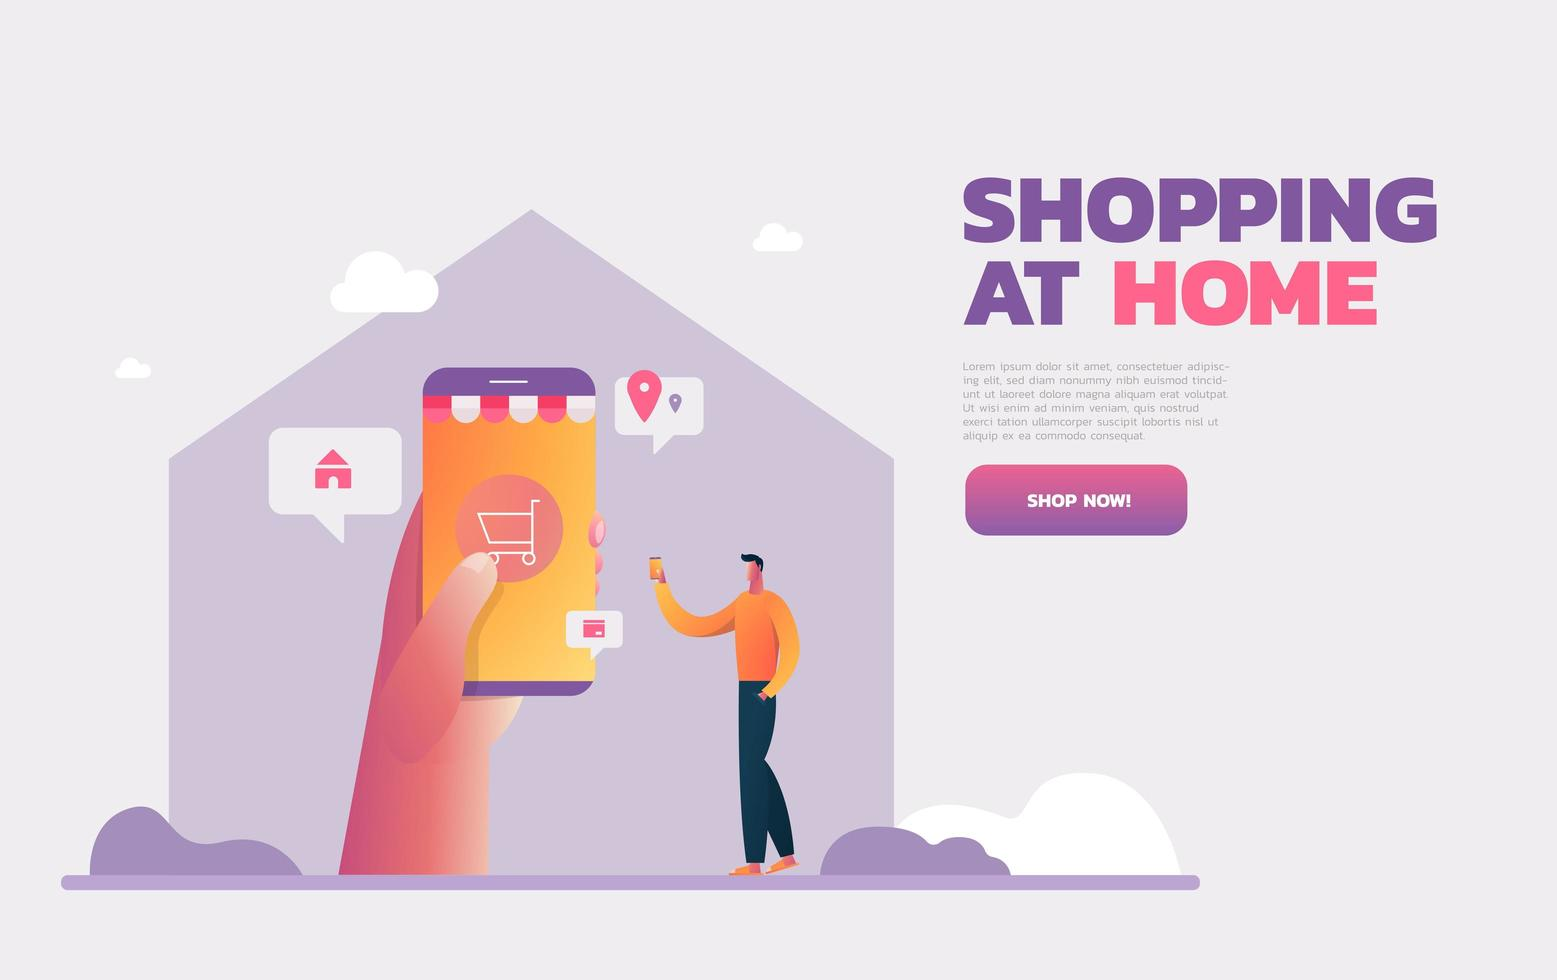 Coronavirus Epidemic Quarantine Isolation. Man Shops Online with Smartphone. Buy at Home, Receive Parcel. Survive COVID 19. Flat Vector Illustration